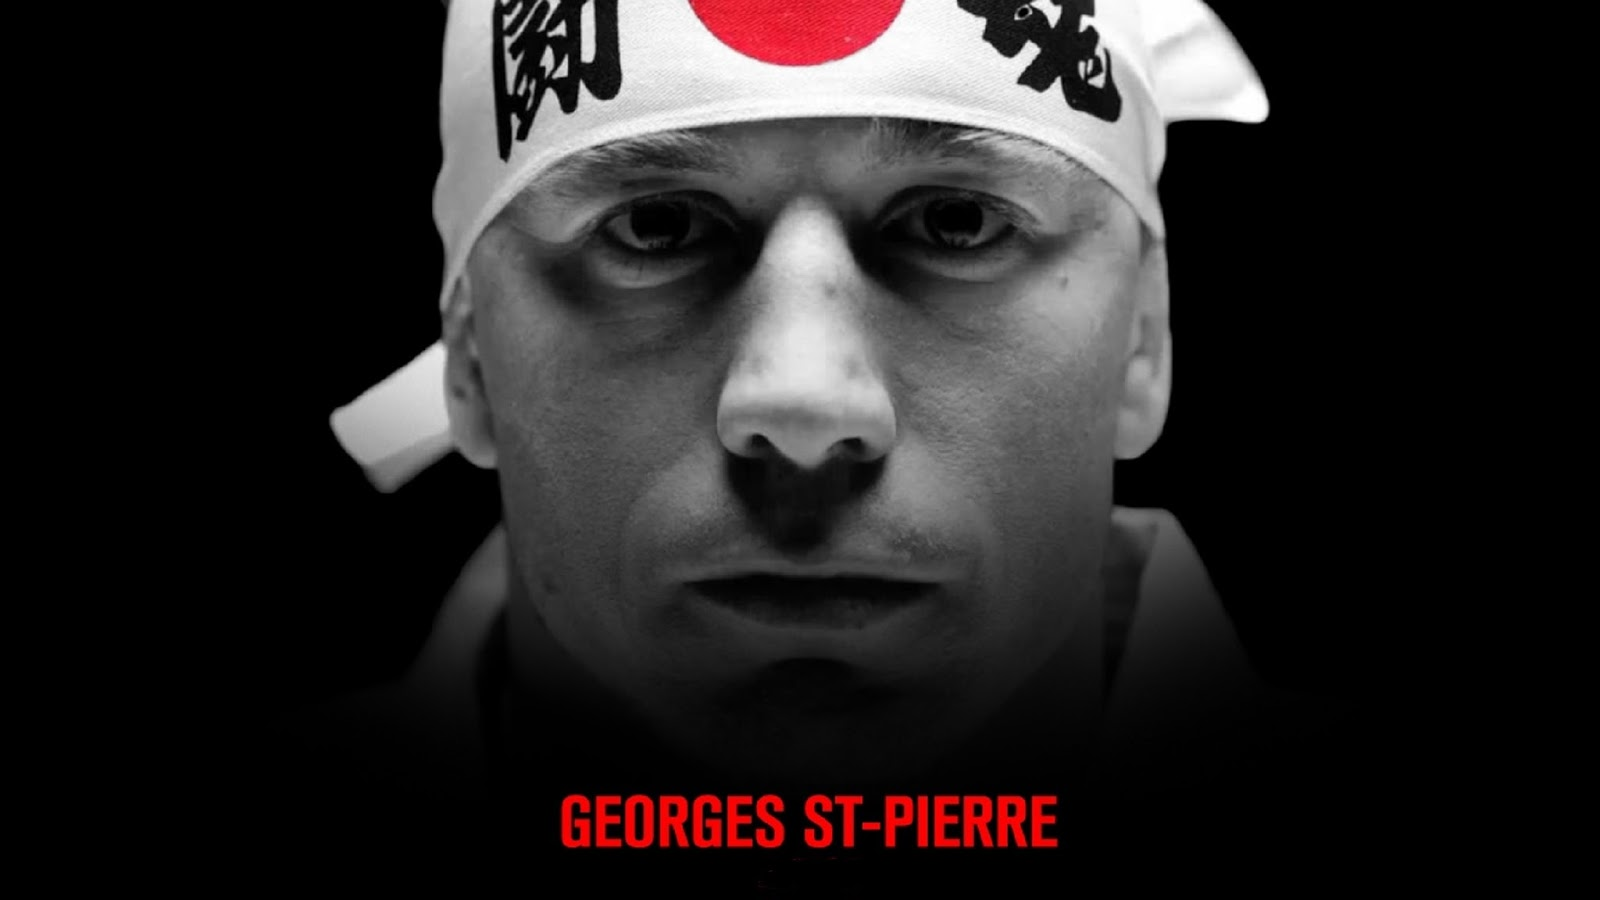 GEORGES ST PIERRE 5